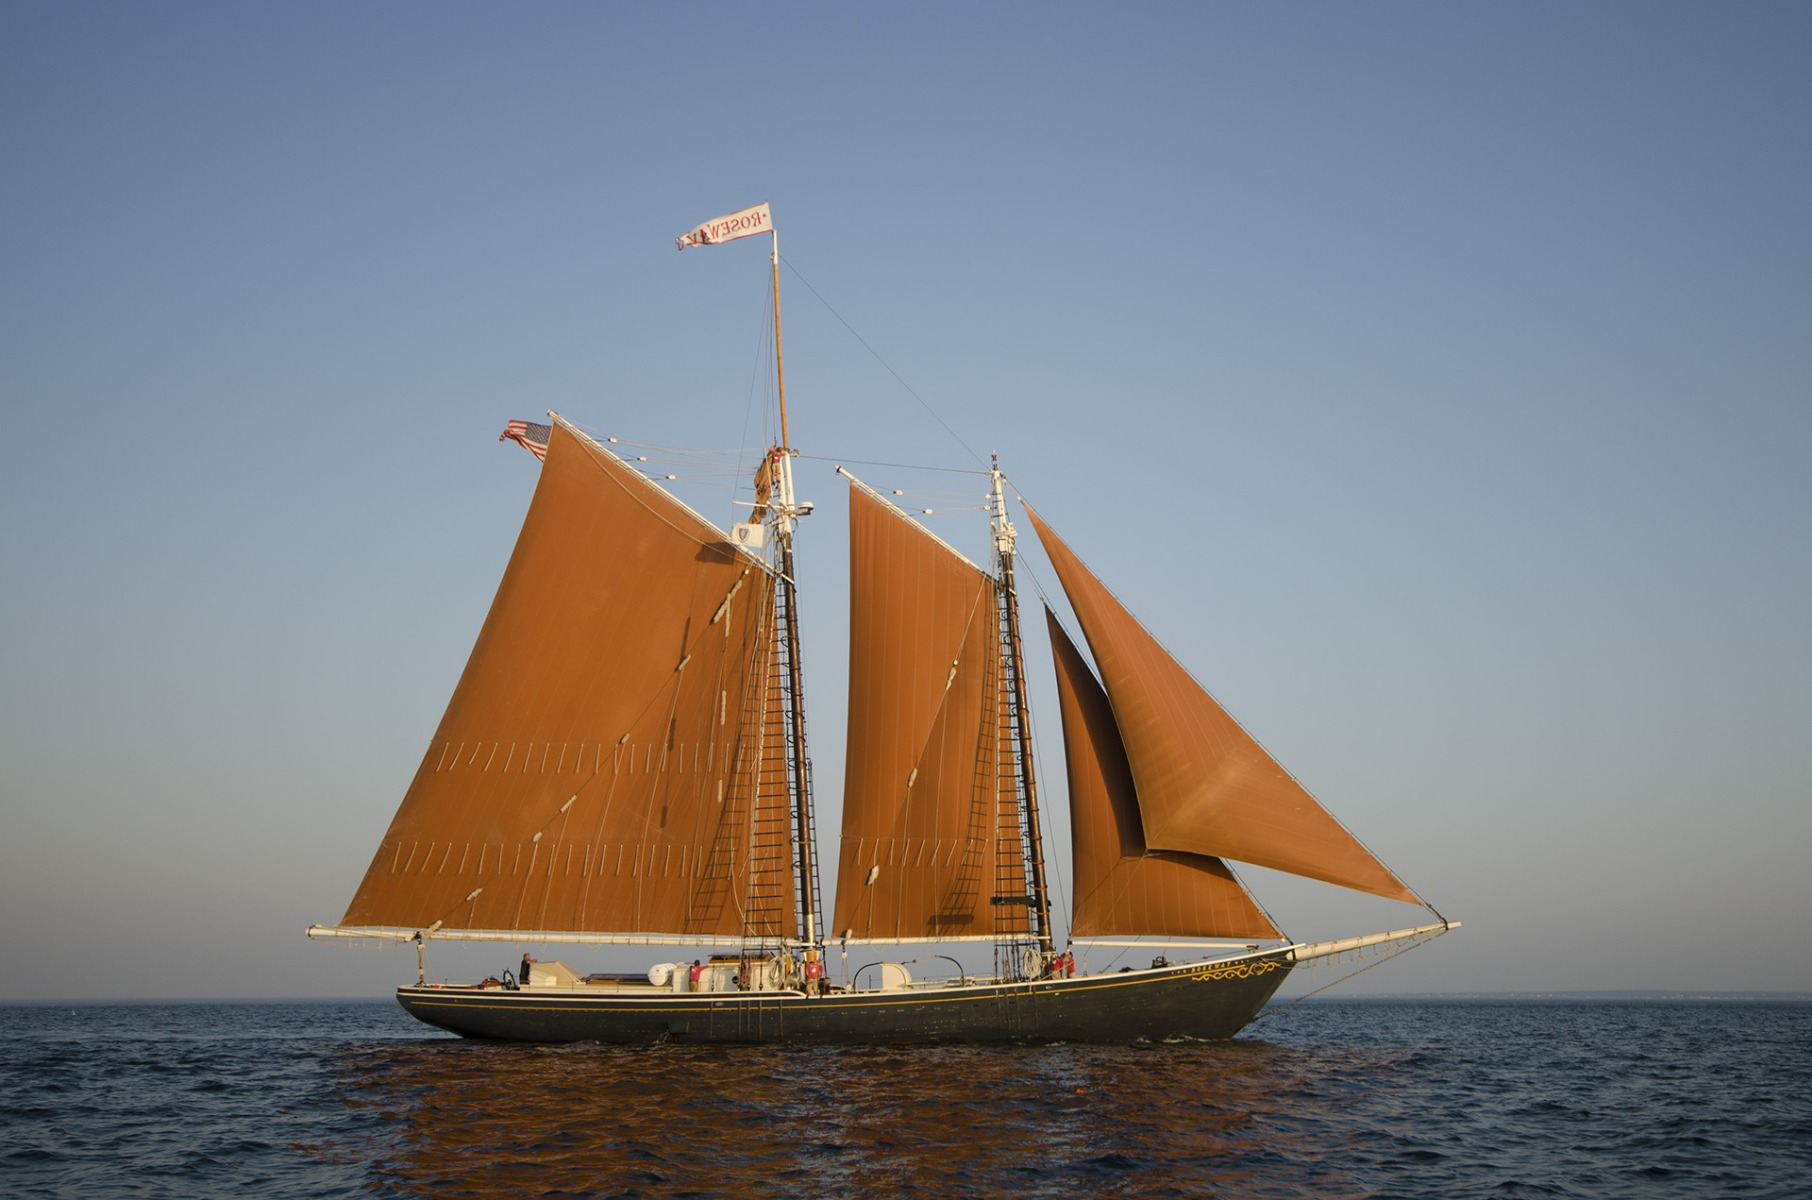 The schooner Roseway is a gaft rig with five sails